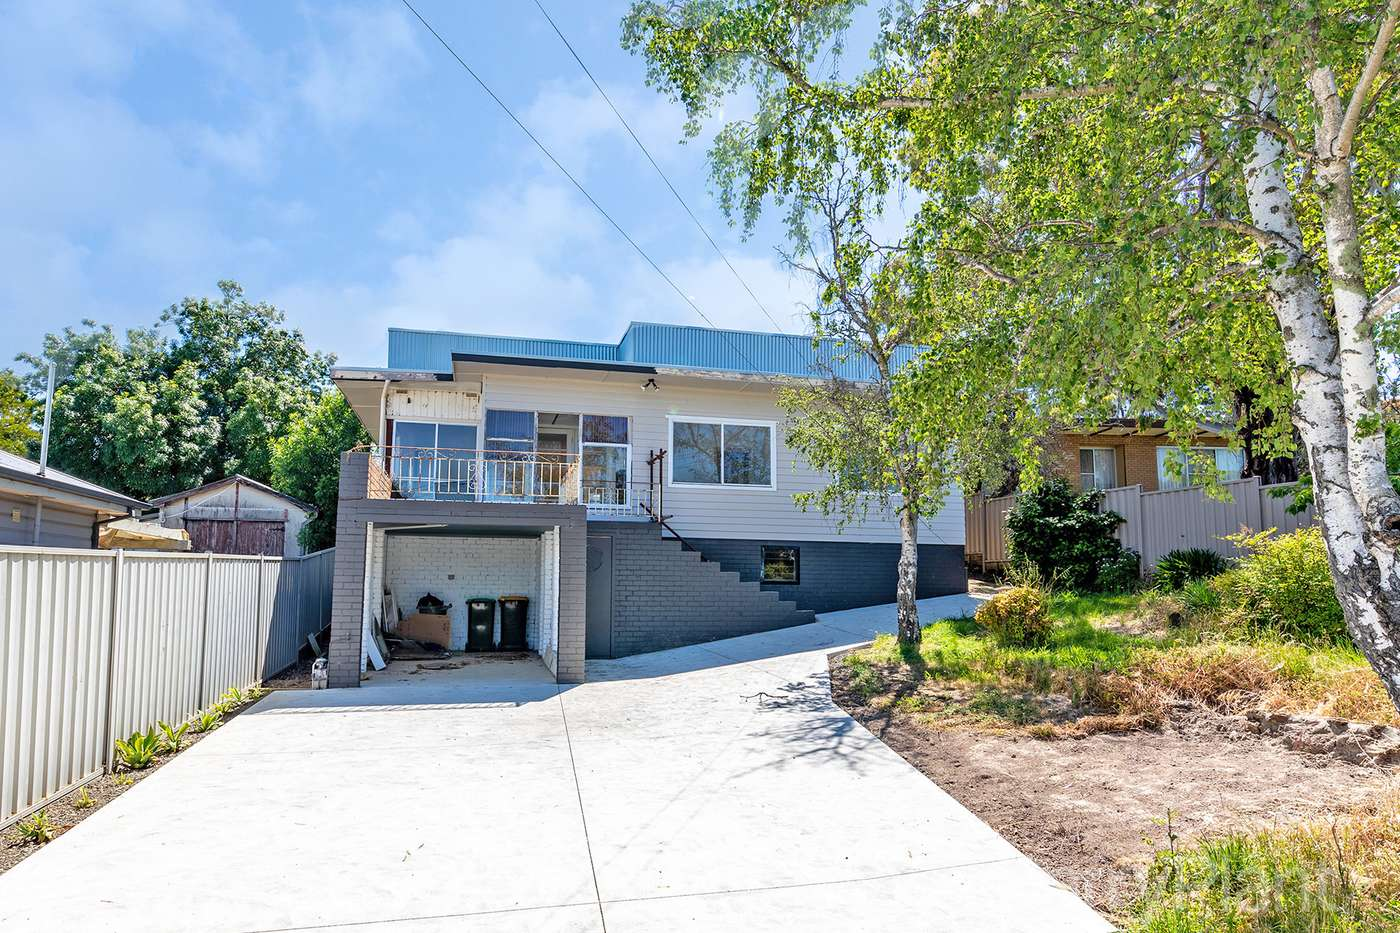 Main view of Homely house listing, 304 Elsworth Street, Mount Pleasant, VIC 3350